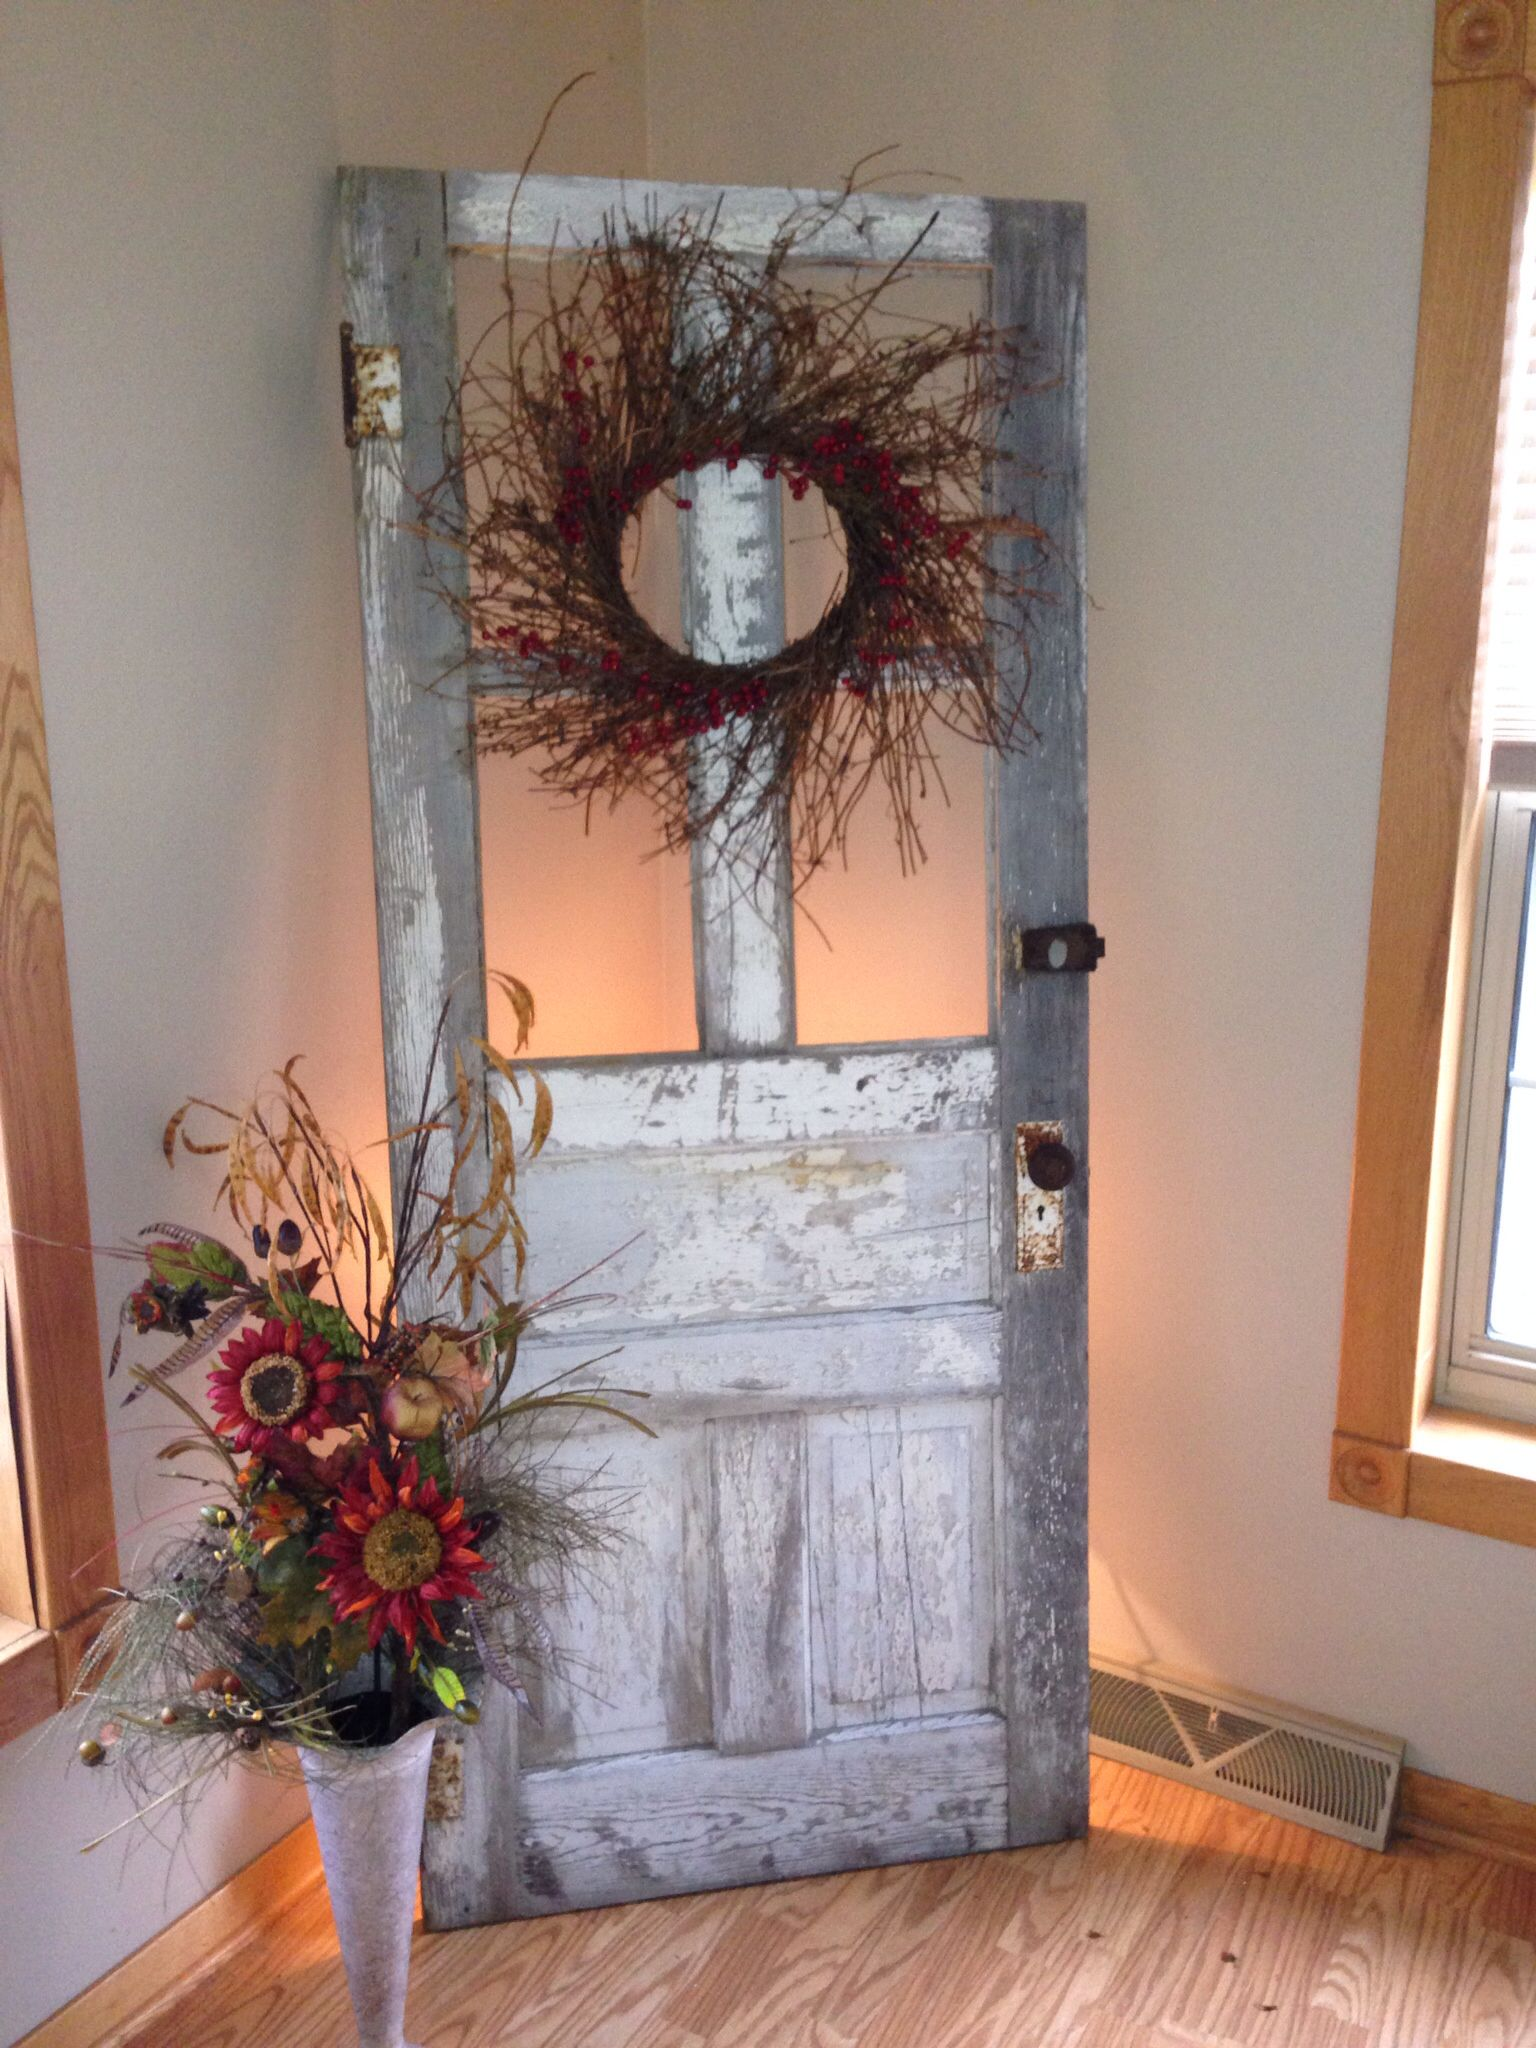 Julie's old door decor - Julie's Old Door Decor Decor In 2018 Pinterest Doors, Old